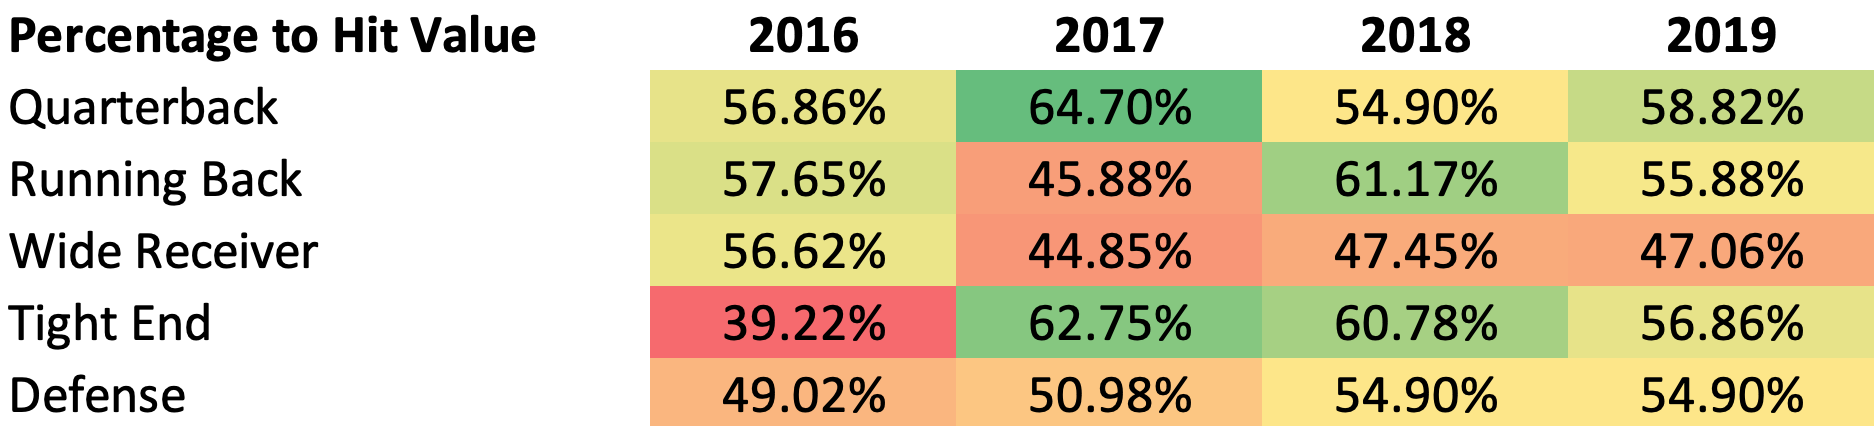 Hit Rate Among Popular Daily Fantasy Football Plays, 2016 to 2019